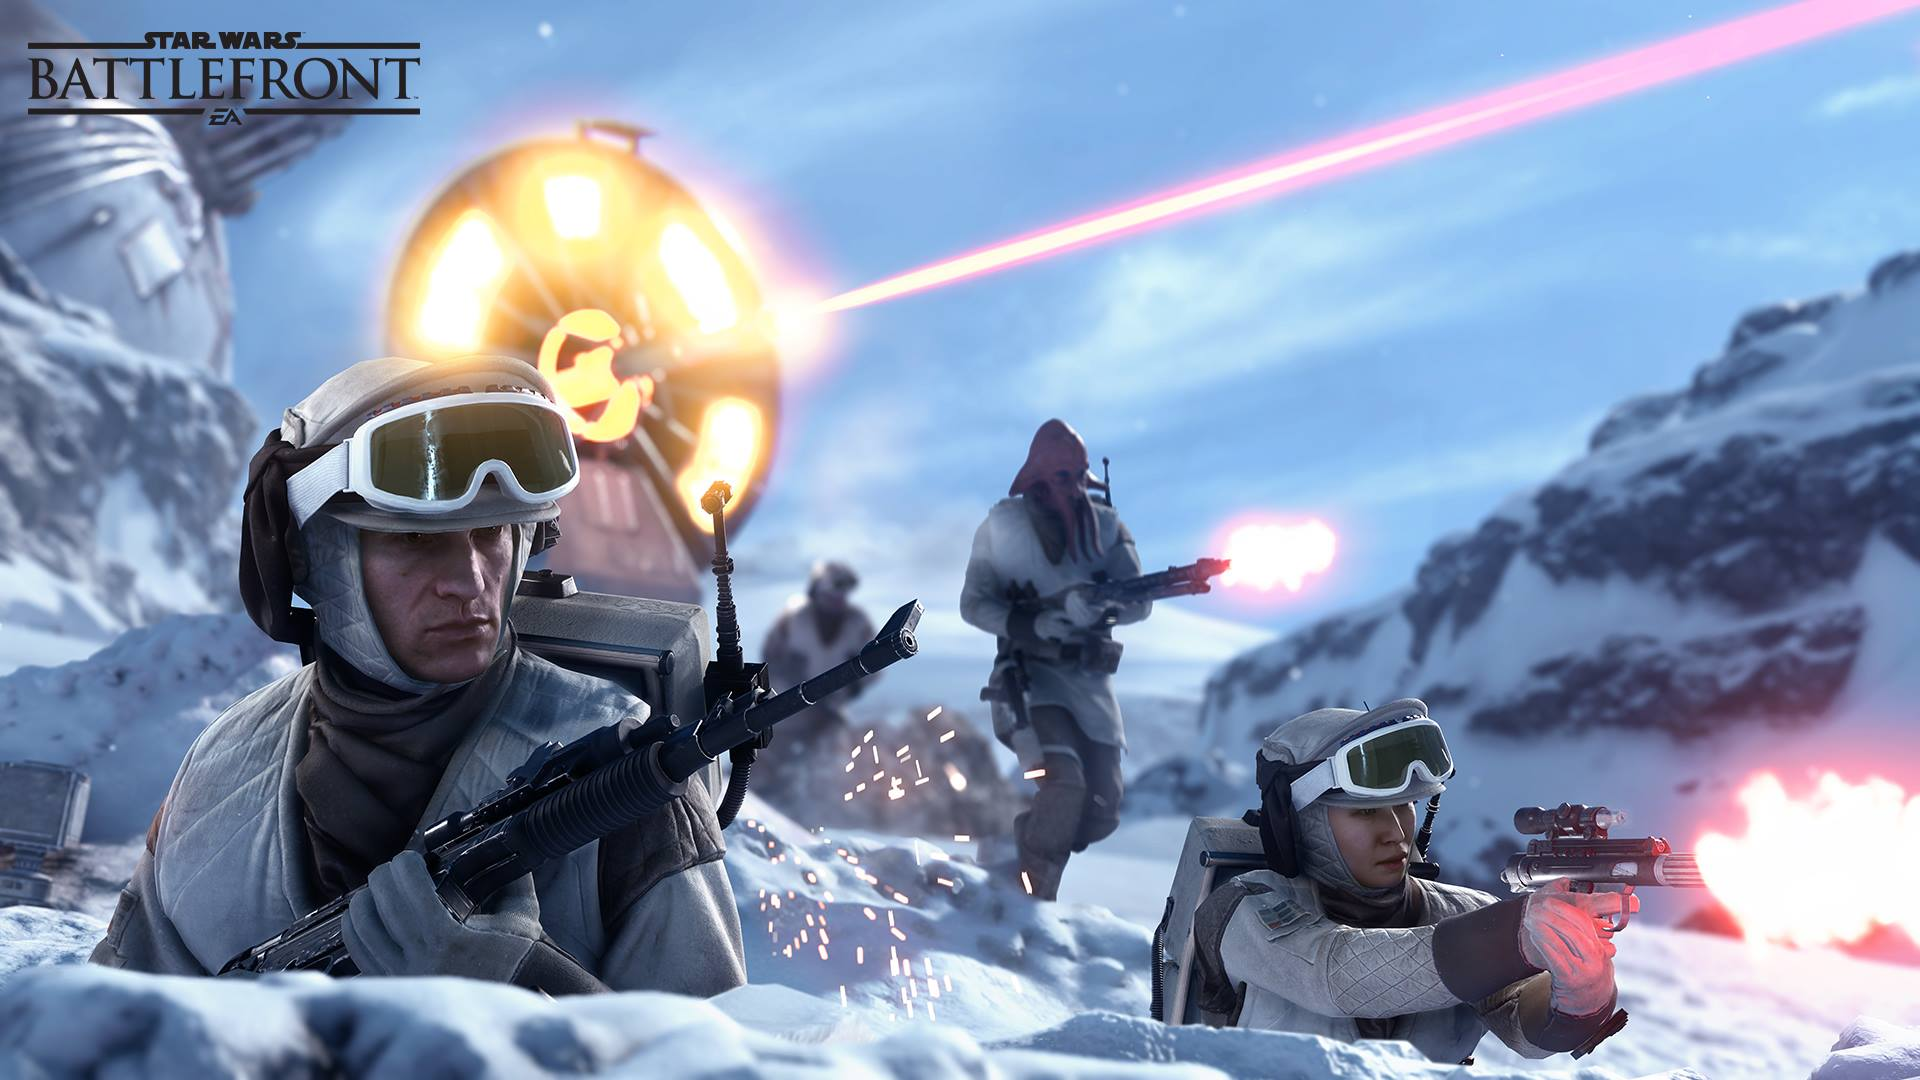 Star Wars Battlefront Wallpapers Wallpaper Cave